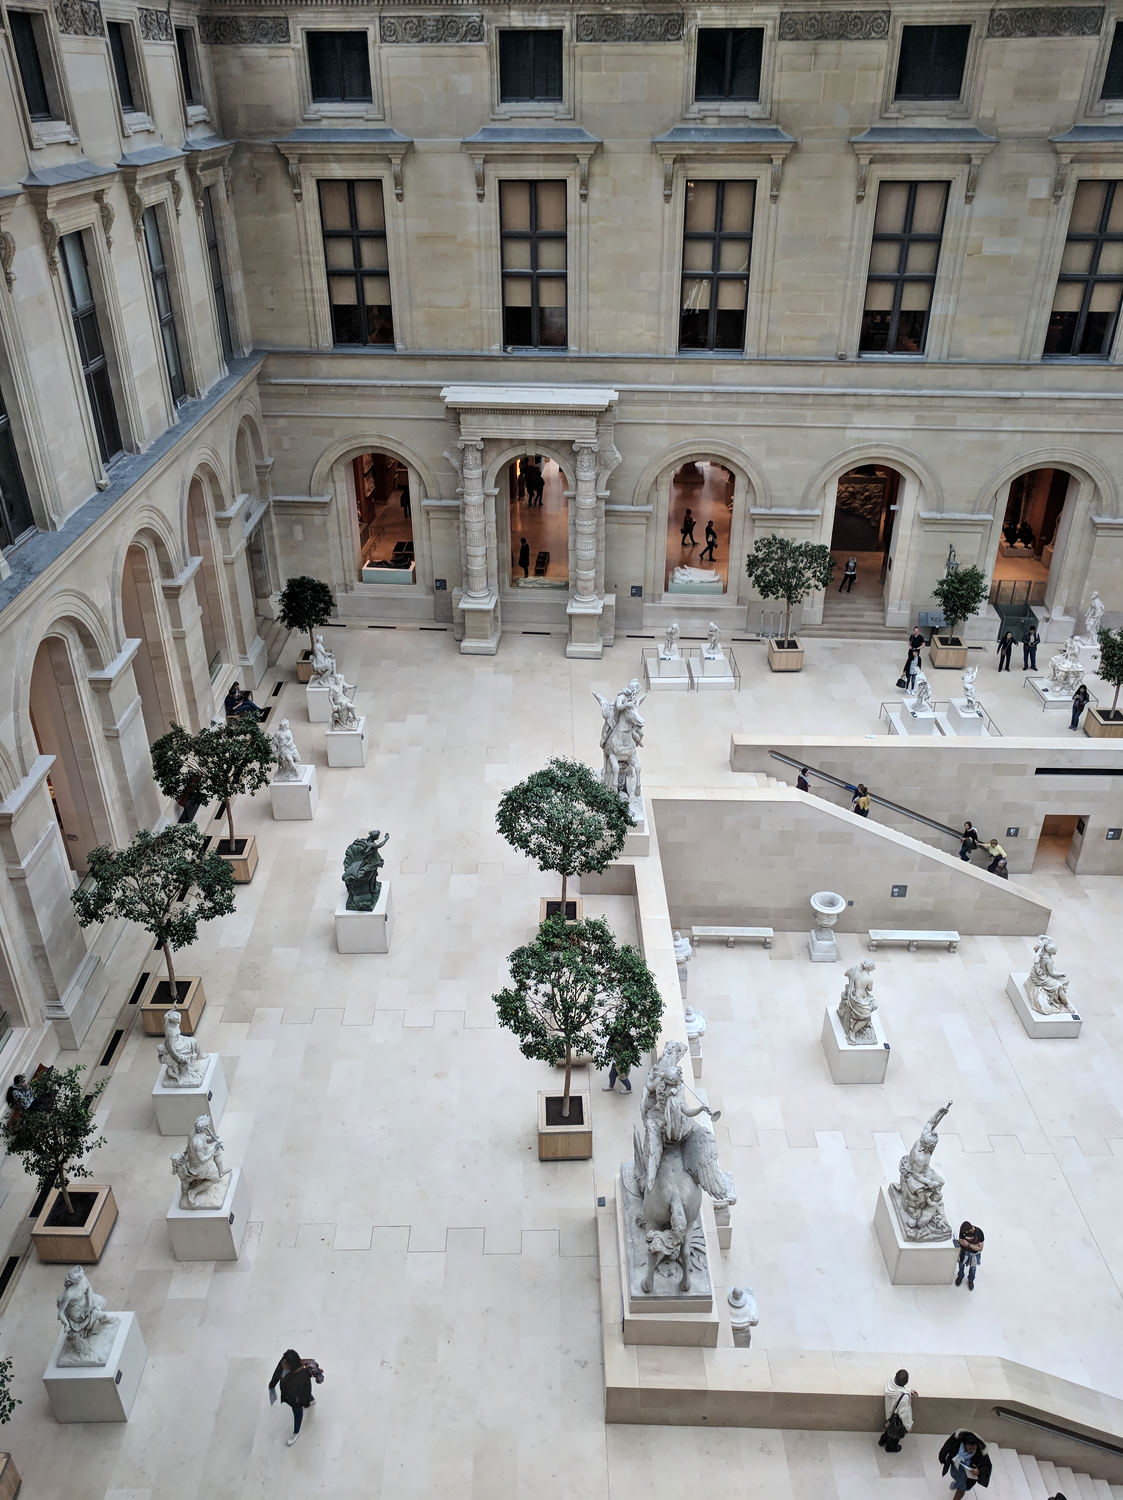 Interior of the Louvre